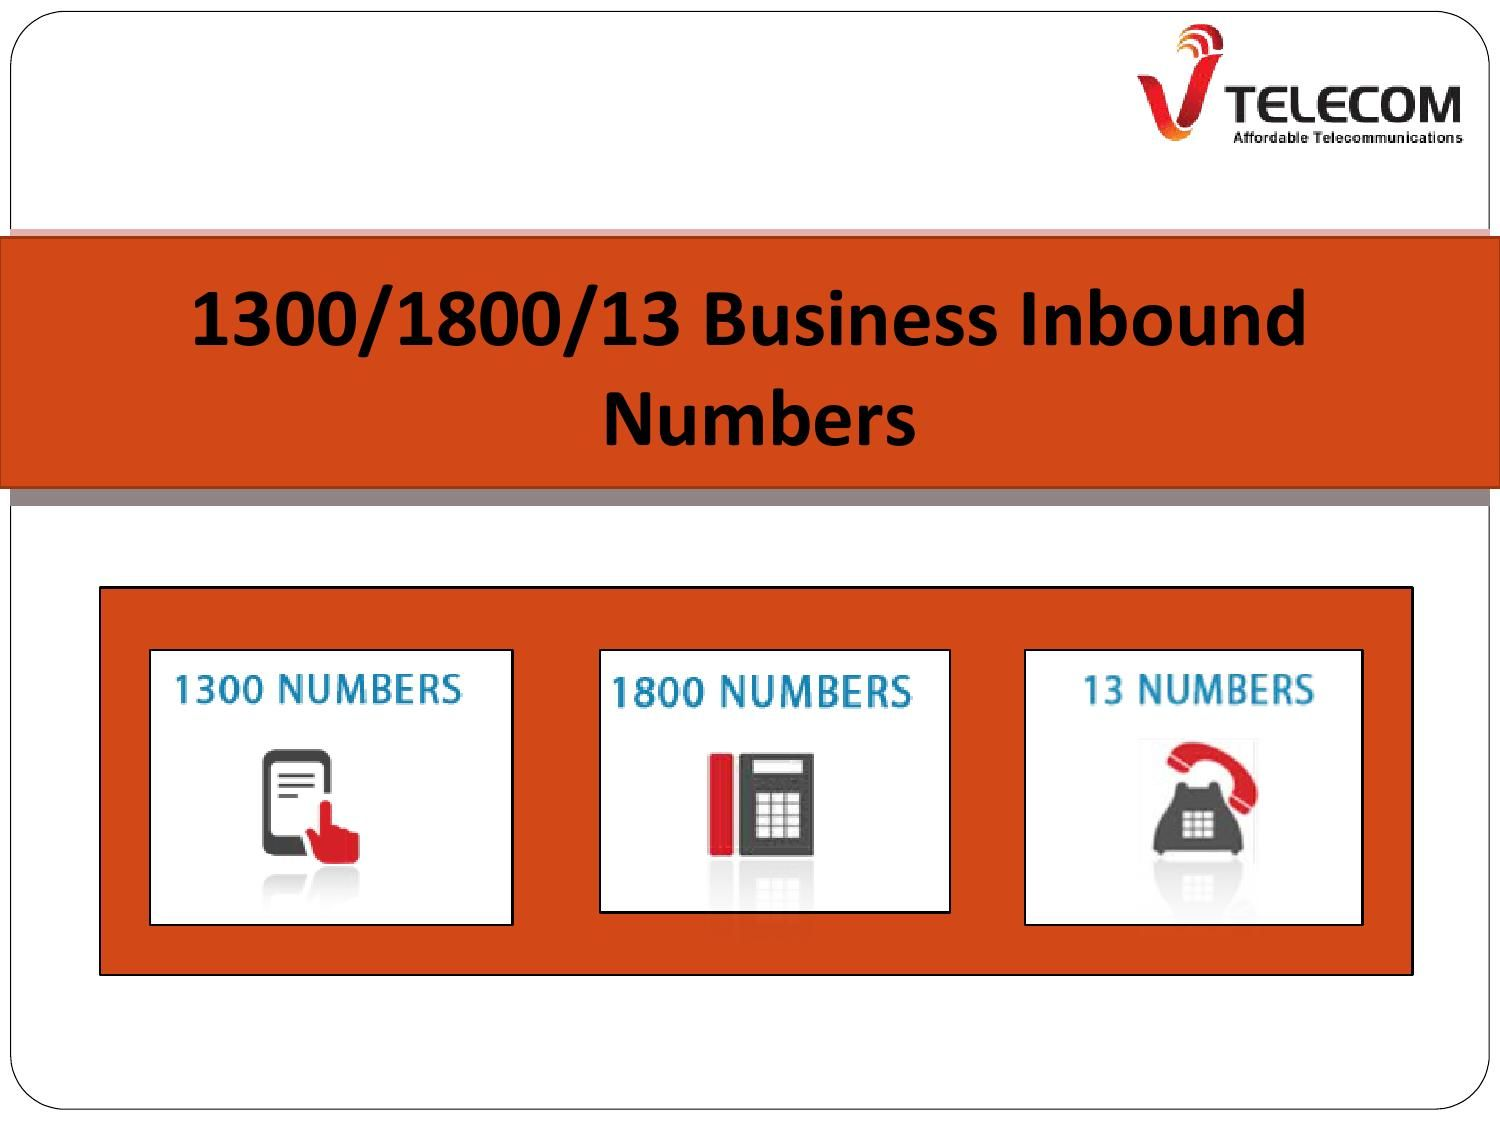 - Australian 1300/1800/13 inbound numbers help you to get more inbound calls than ordinary number. You make easier for your customers to contact with you.